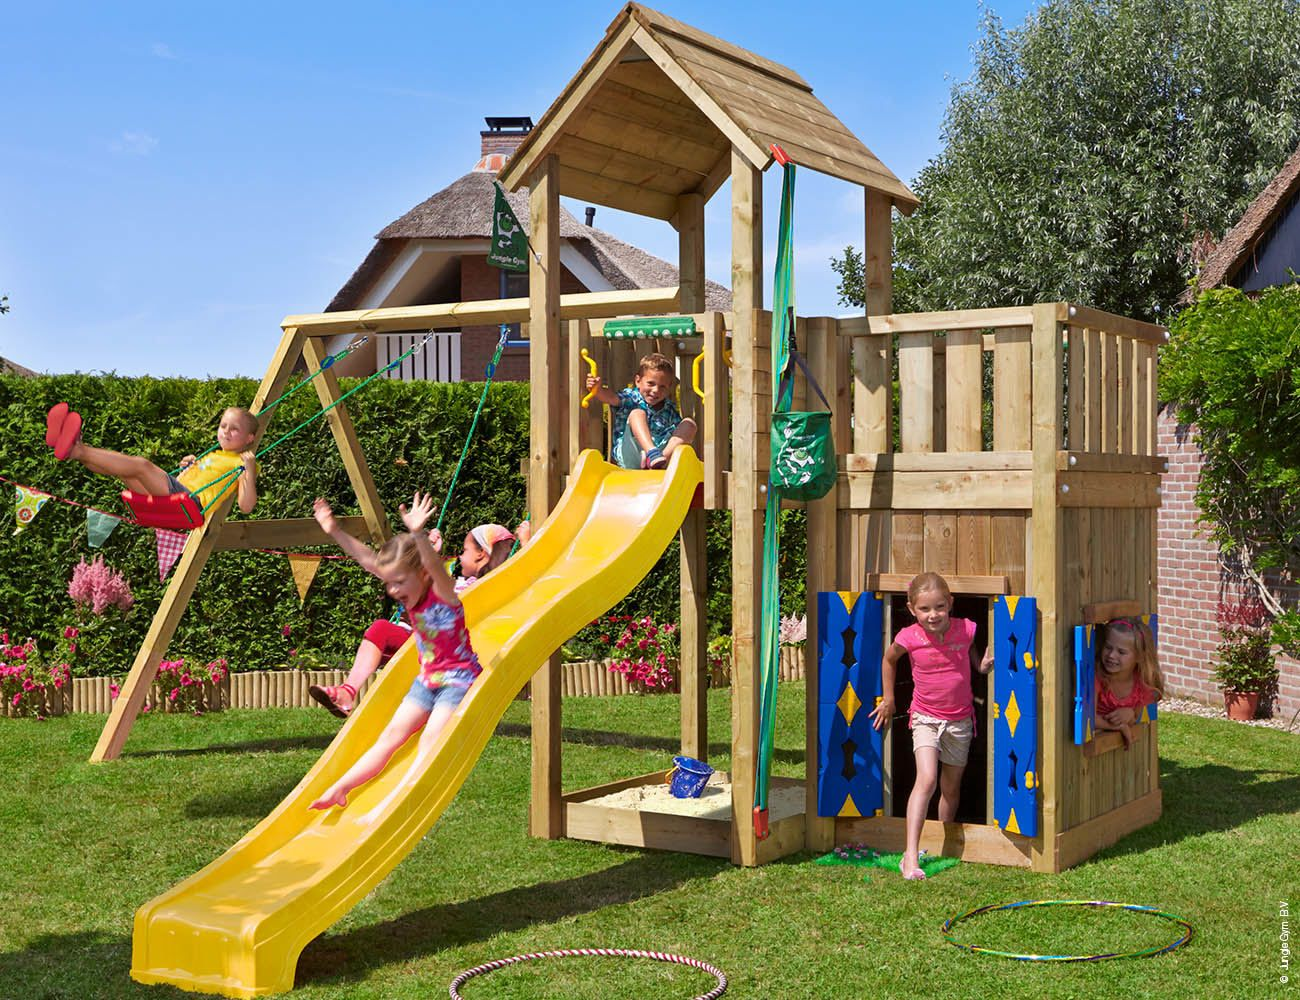 Jungle Gym Palace Mansion with Swing Arm and playhouse